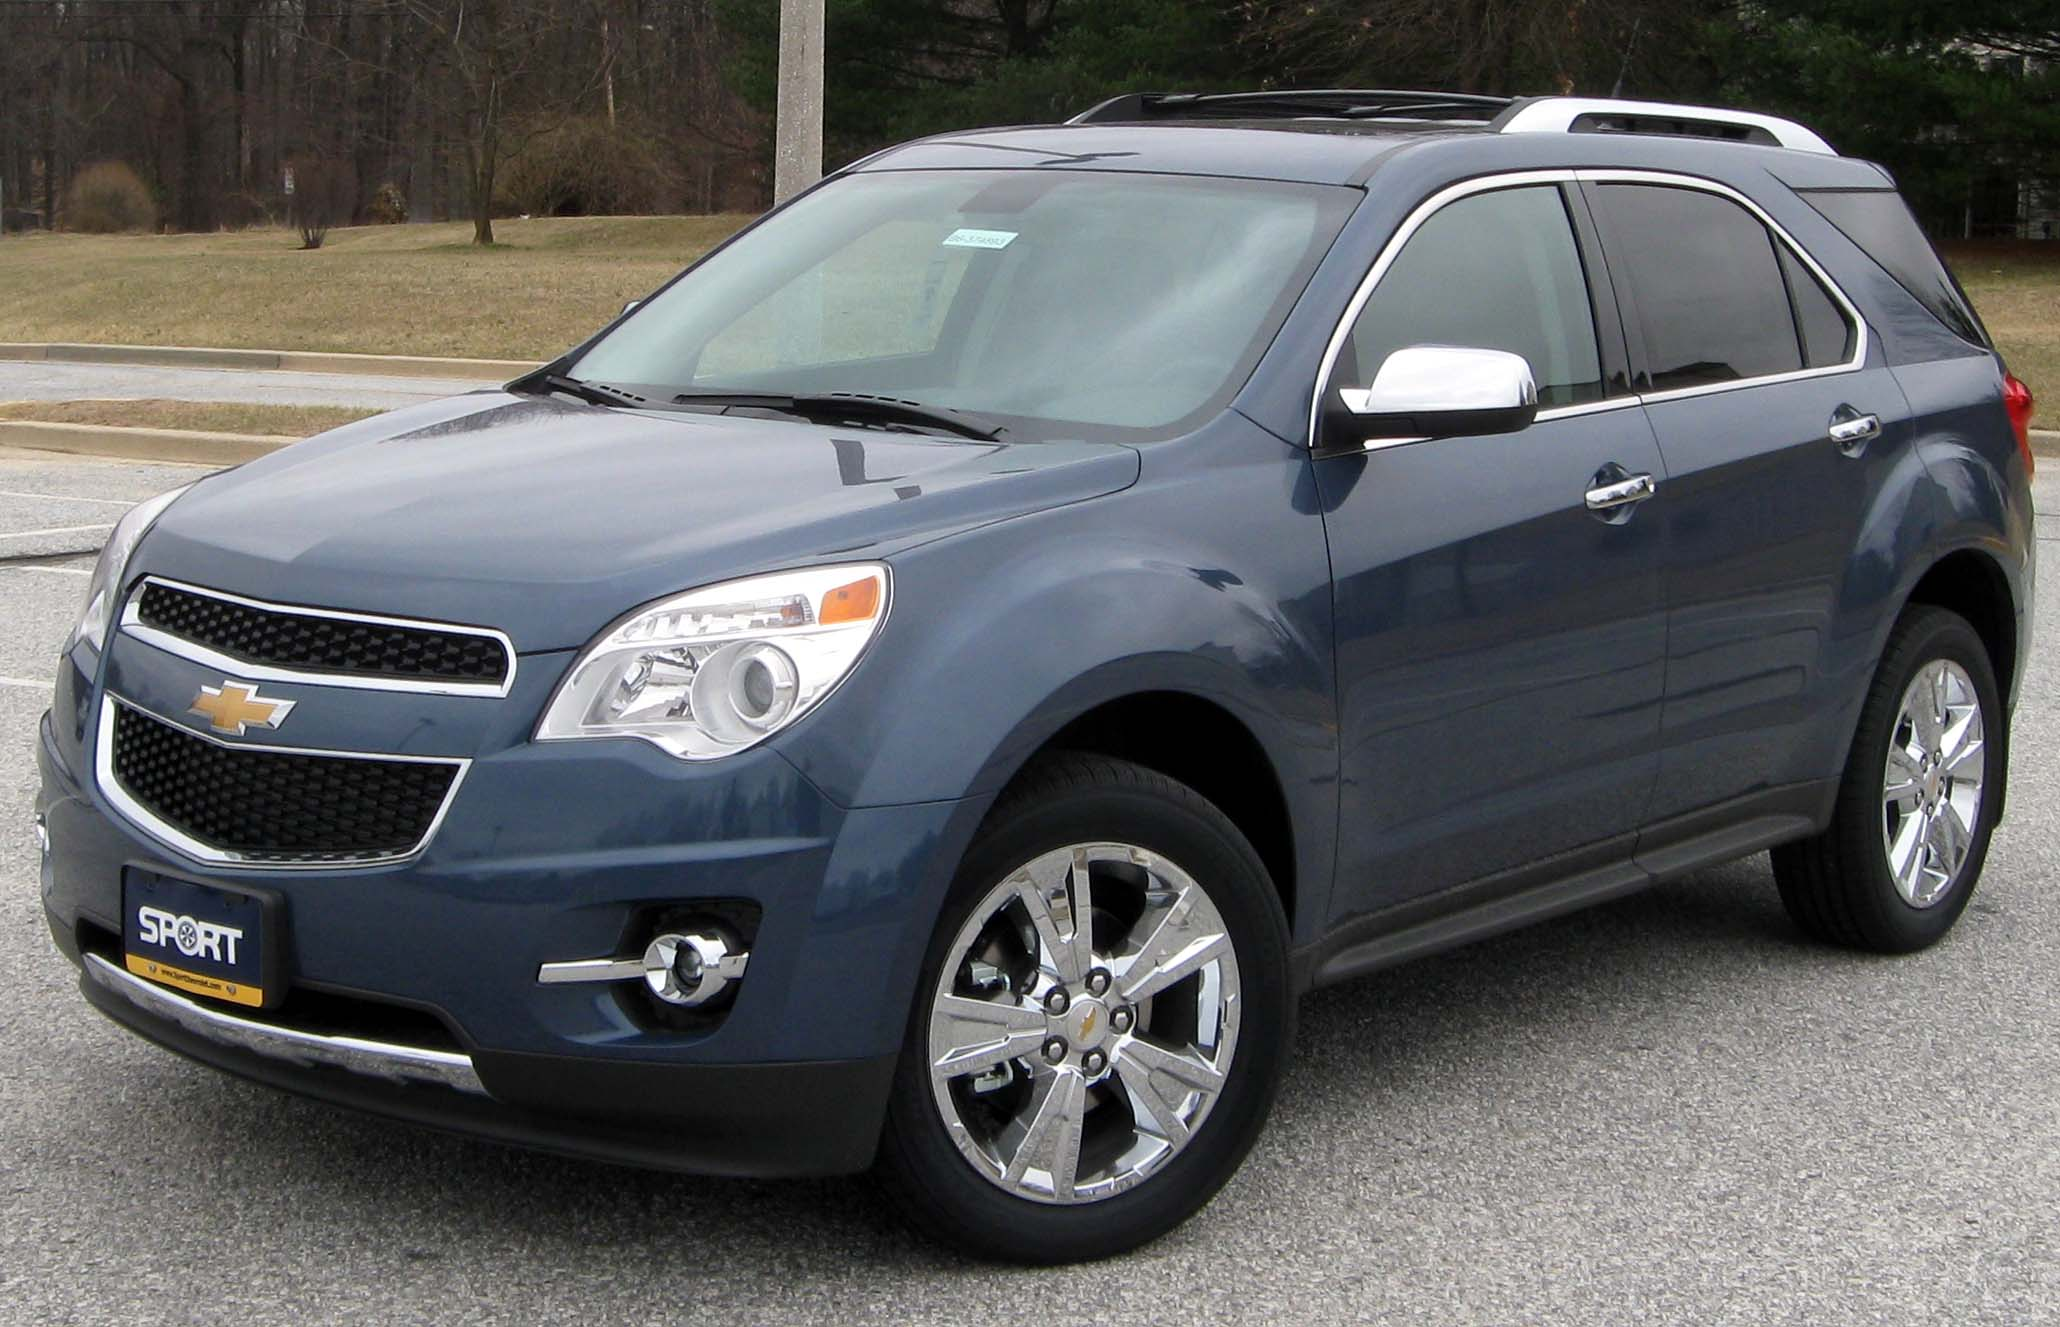 Chevrolet equinox 2014 photo - 3